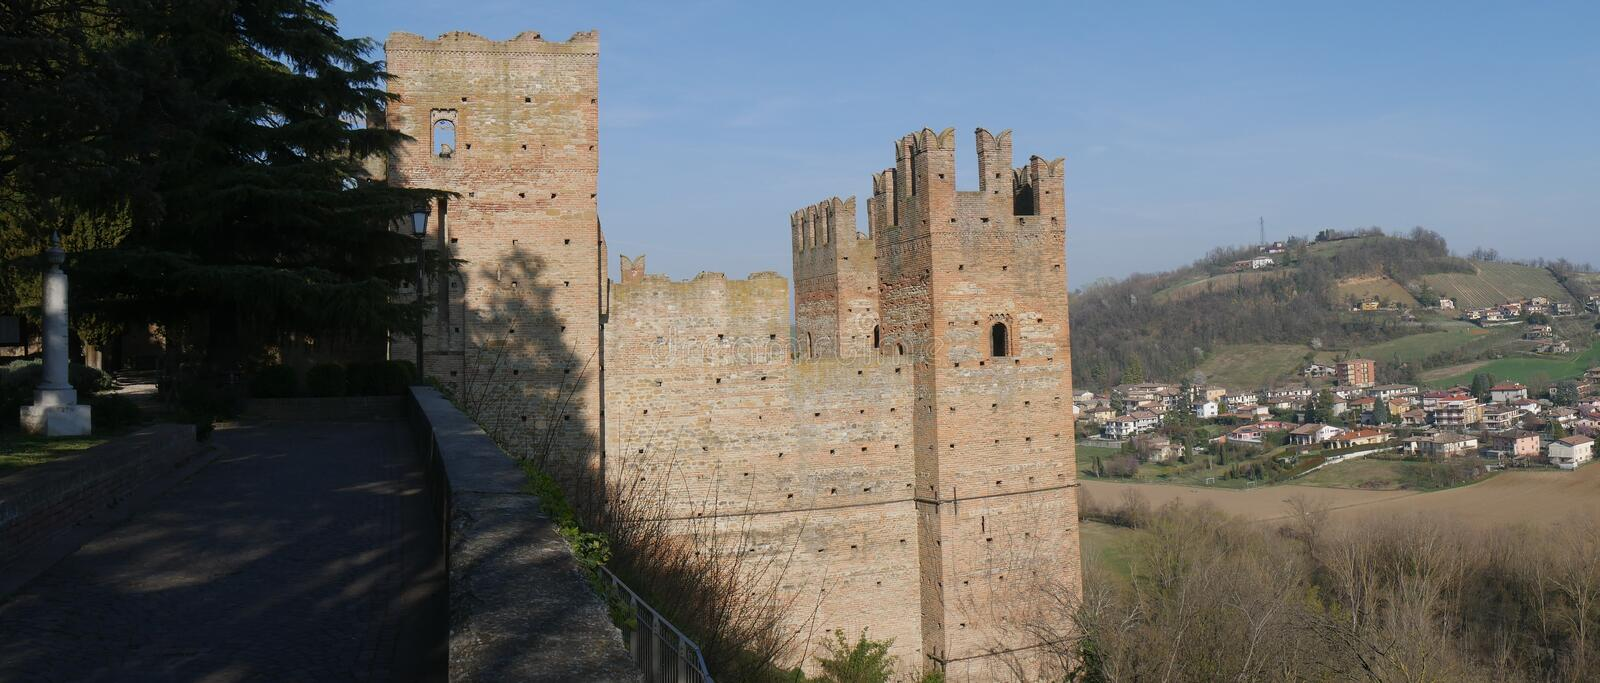 Visconti Castle in Castell`Arquato. Visconti Castle was the seat of the Visconti garrison and has a quadrangular plan with four towers, a mastio and a ditch stock photos